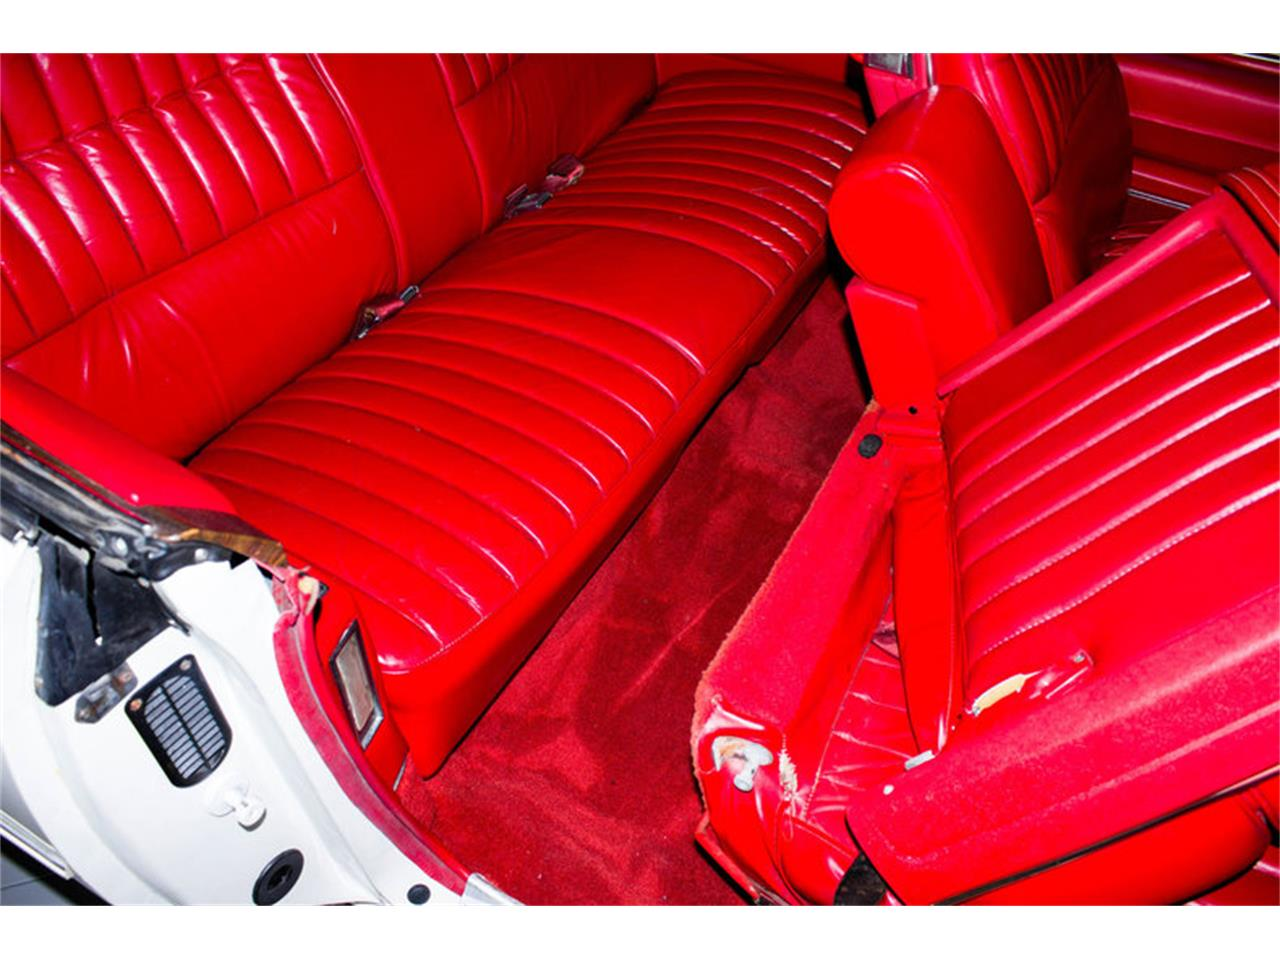 Large Picture of '73 Cadillac Eldorado Offered by Skyway Classics - MD5Y